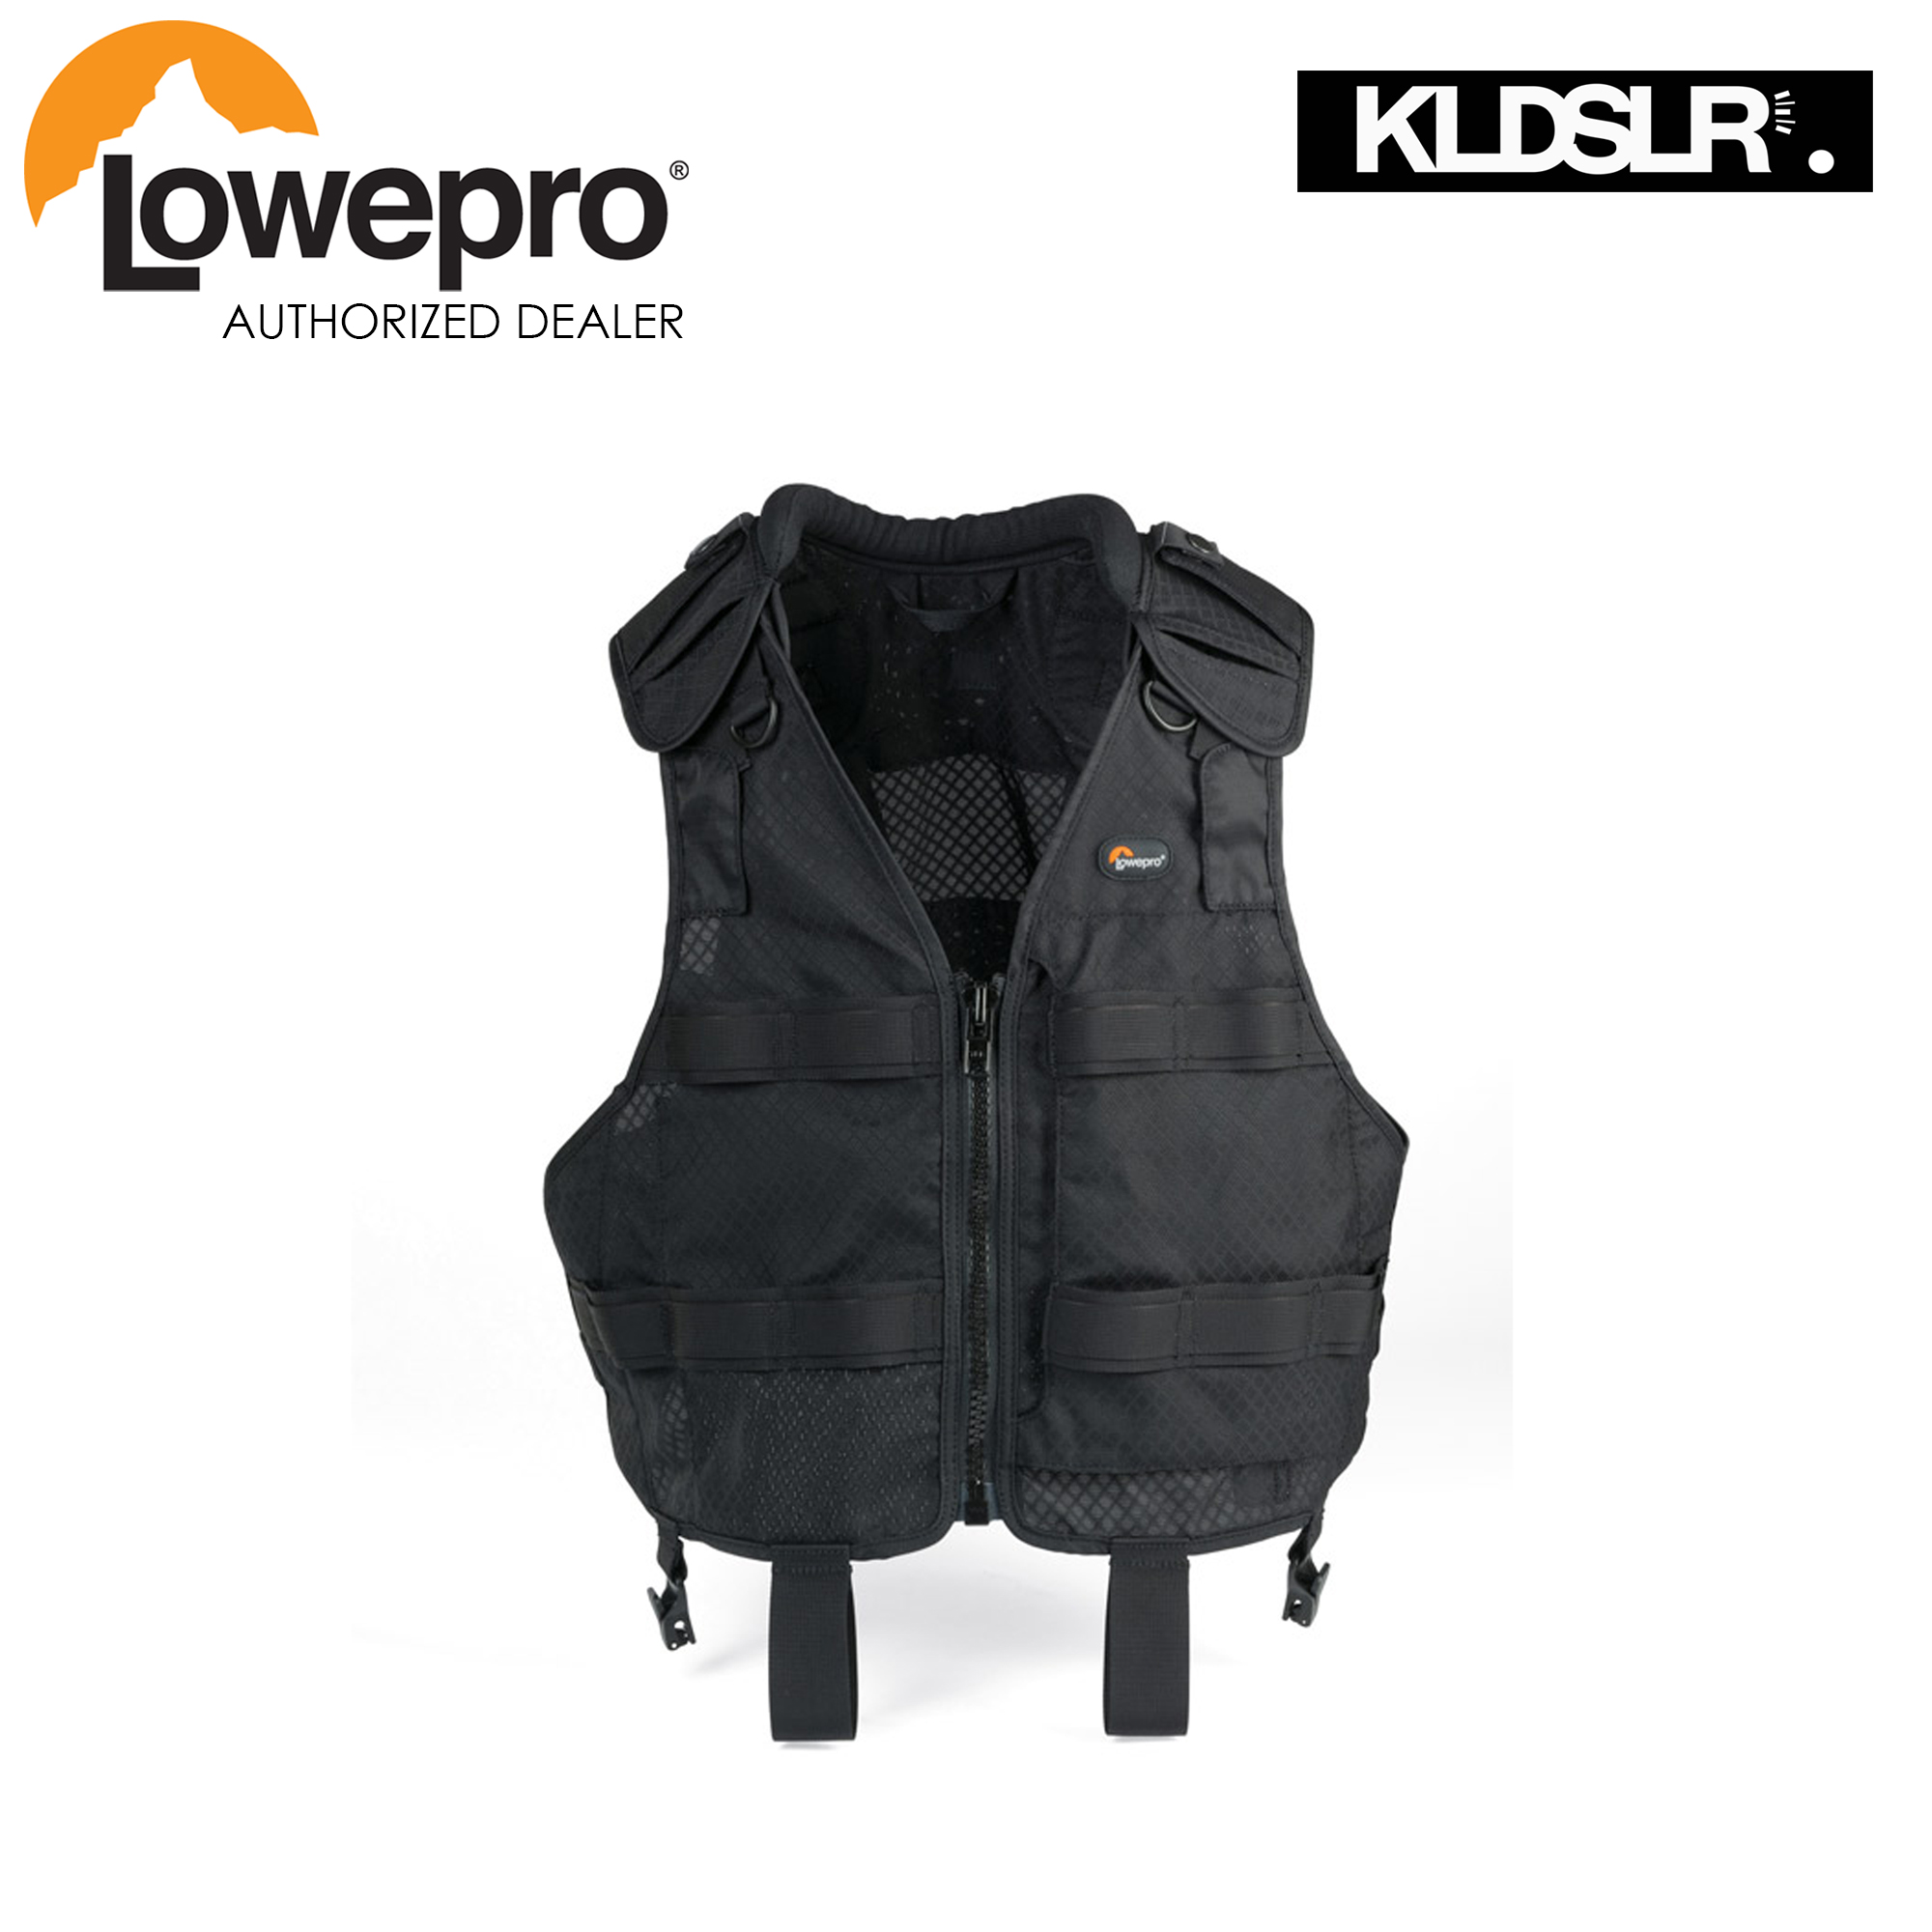 Lowepro S&F Deluxe Belt & Vest Kit (S/M/L/XL)